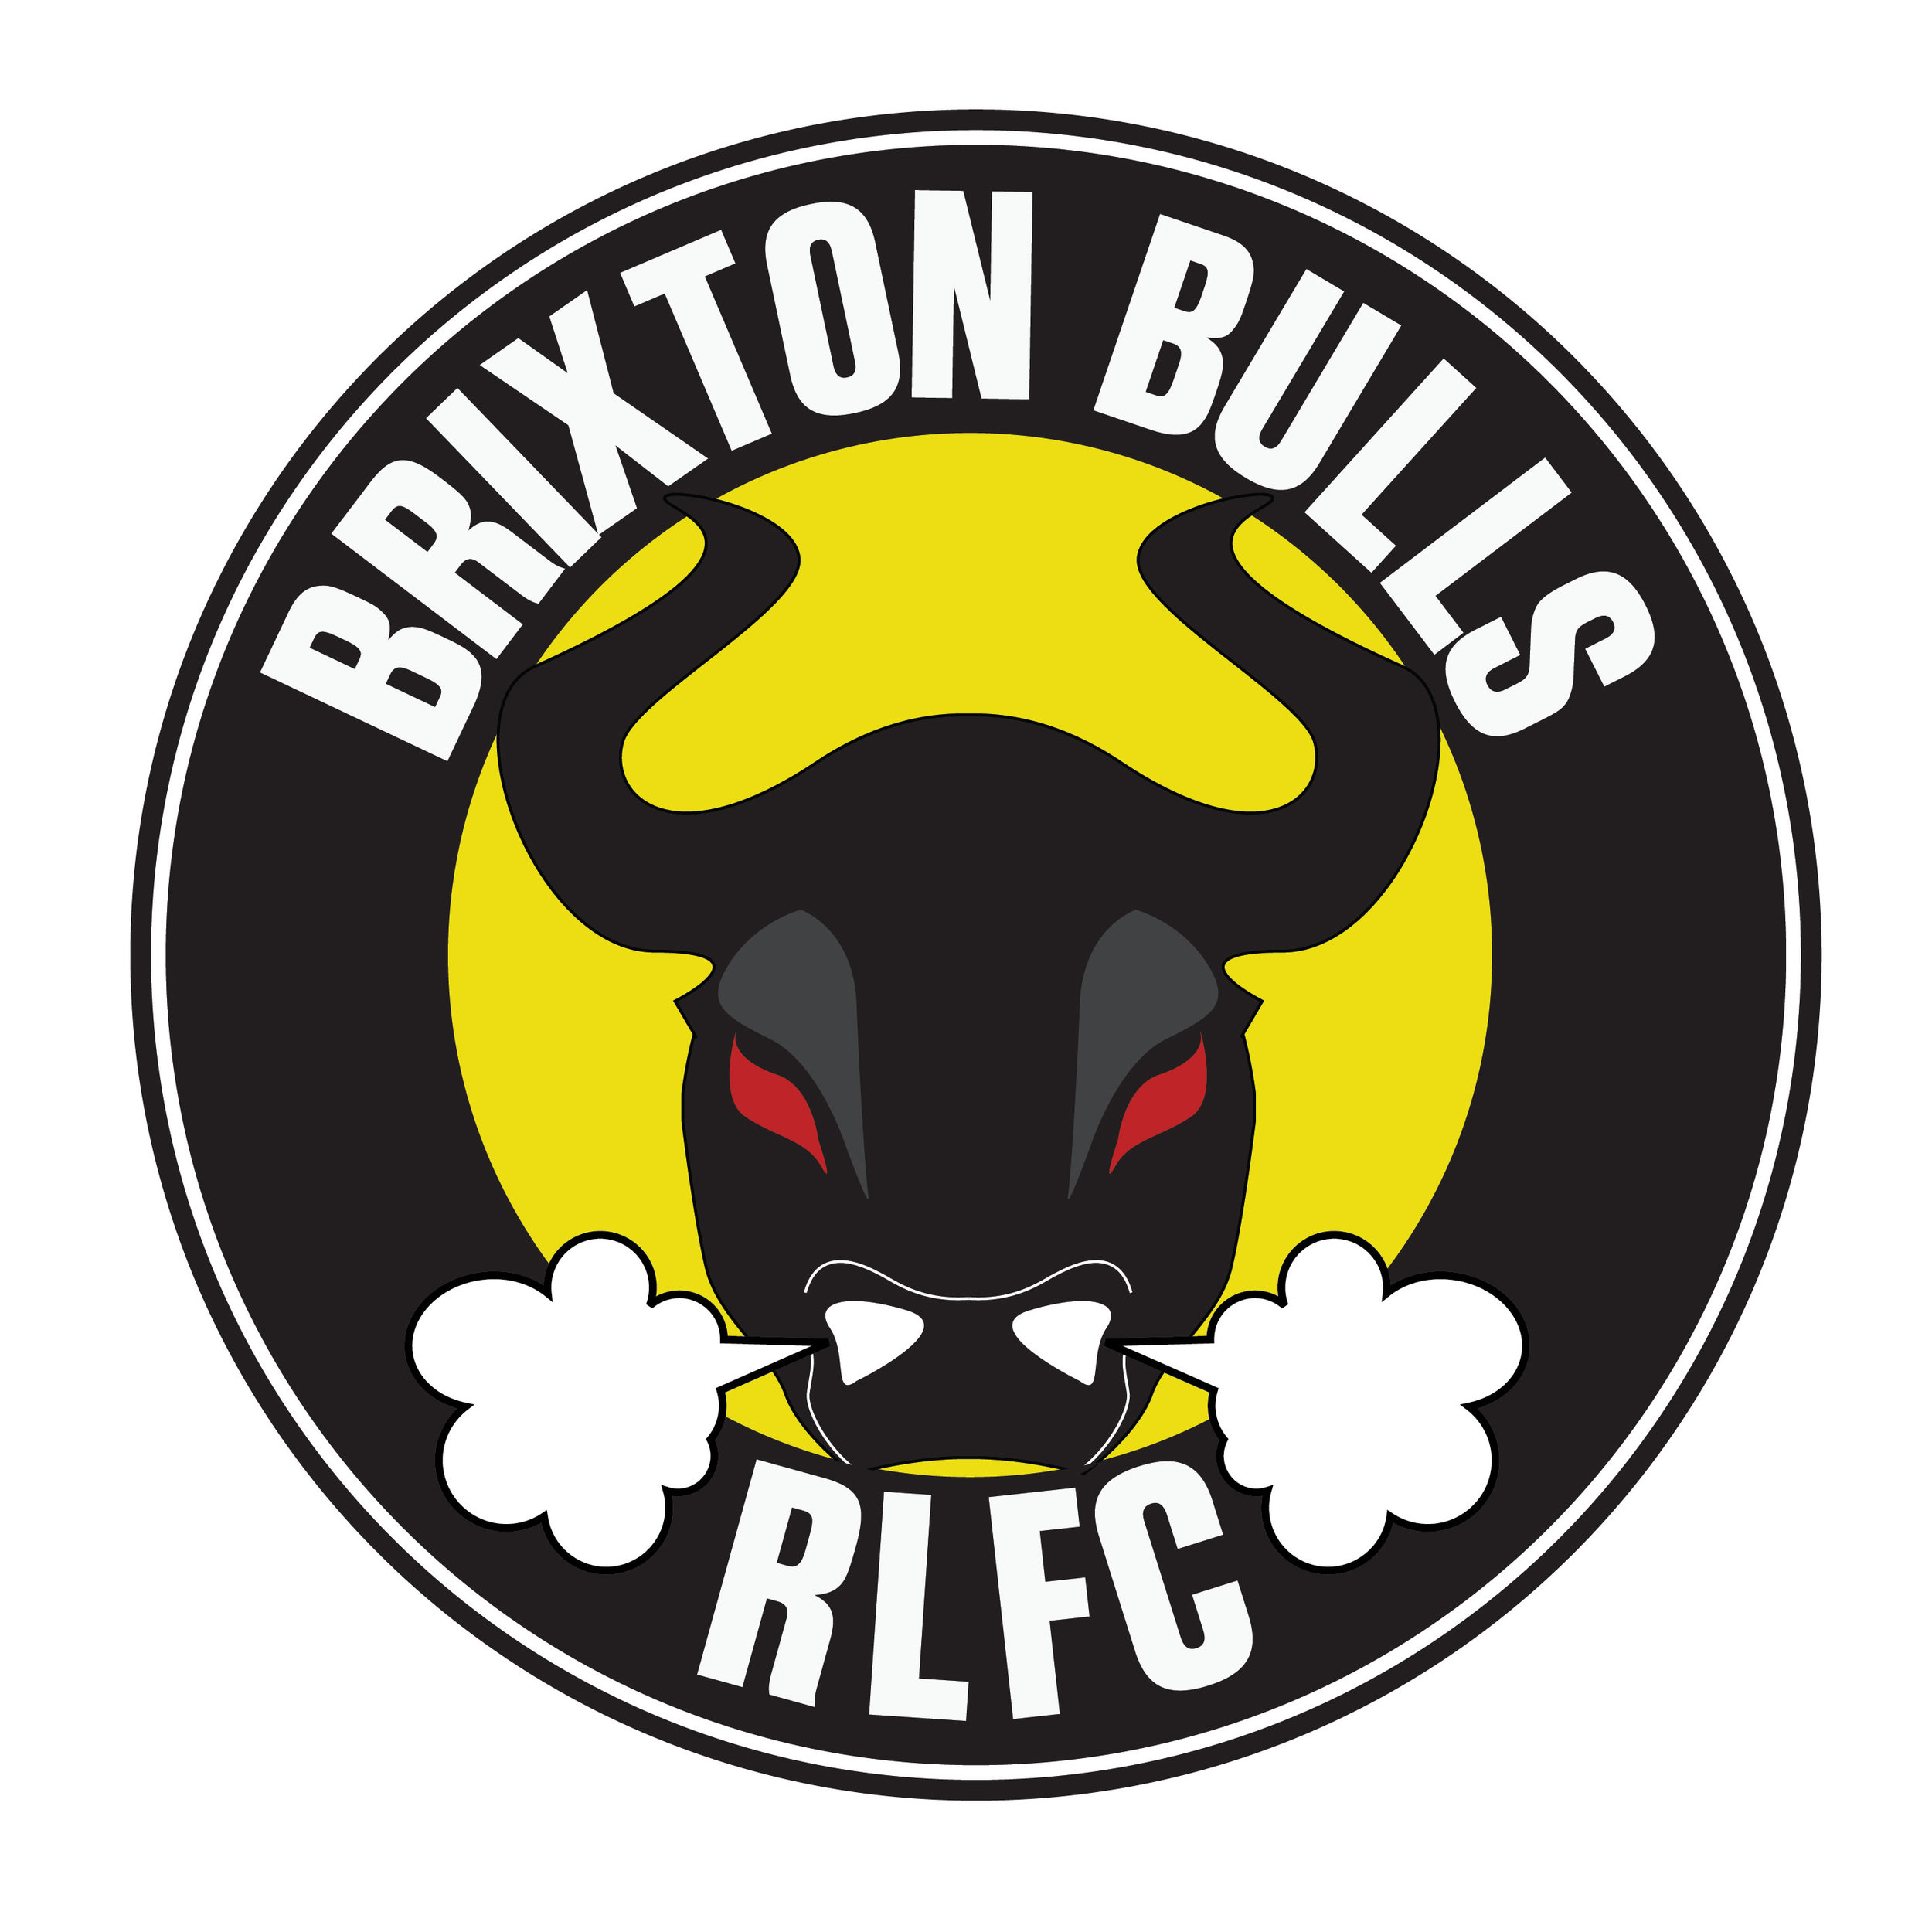 2. Brixton Bulls Rugby League Club